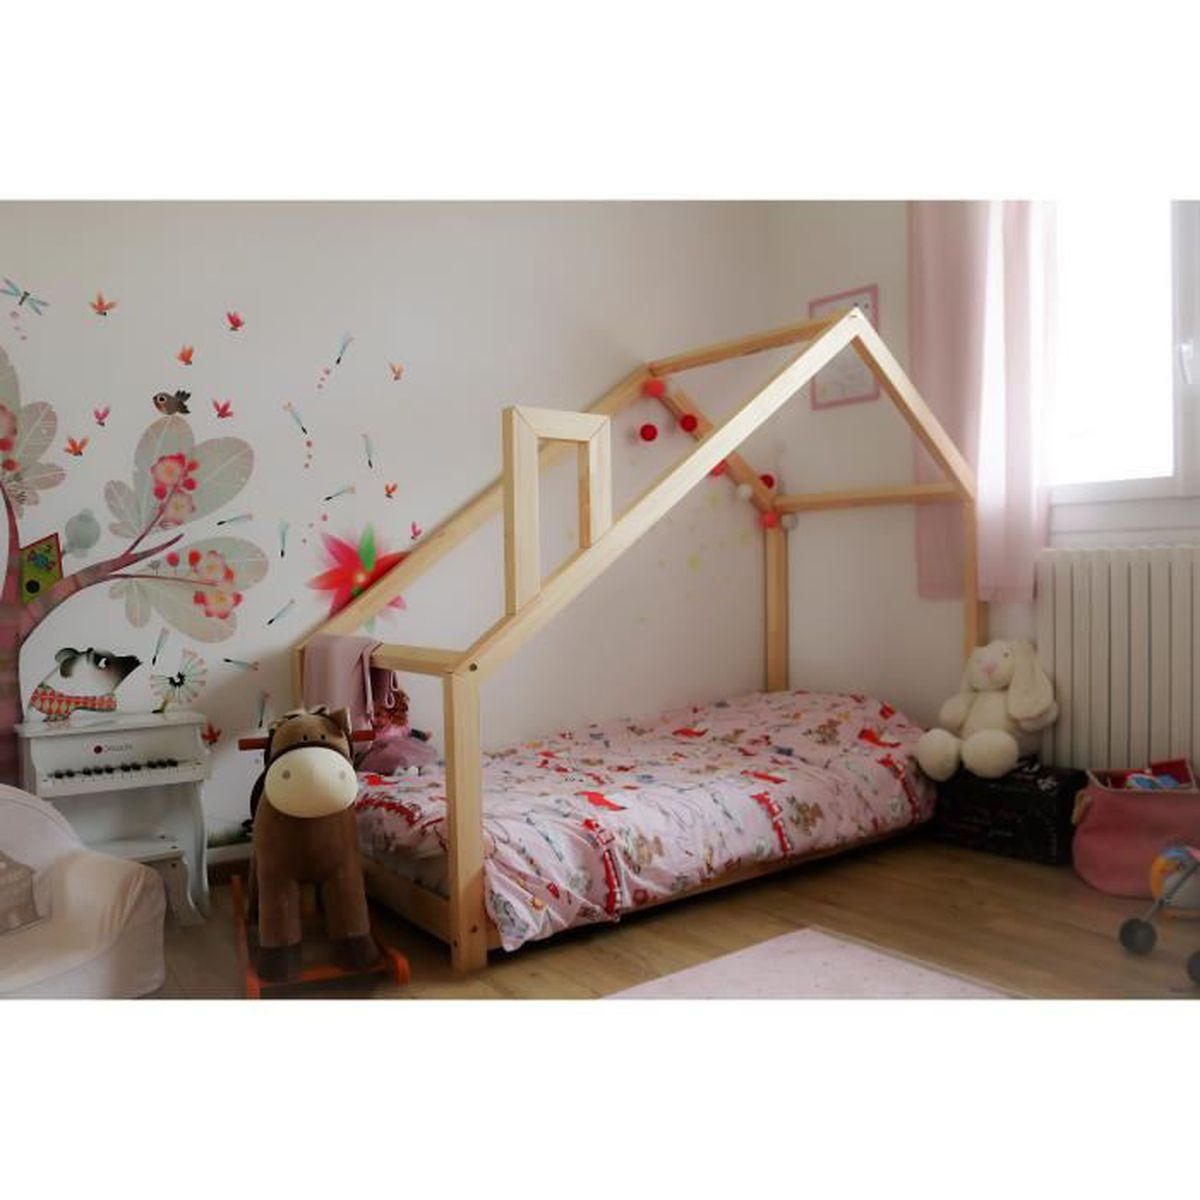 lit cabane maison en pin massif ideal enfant achat. Black Bedroom Furniture Sets. Home Design Ideas